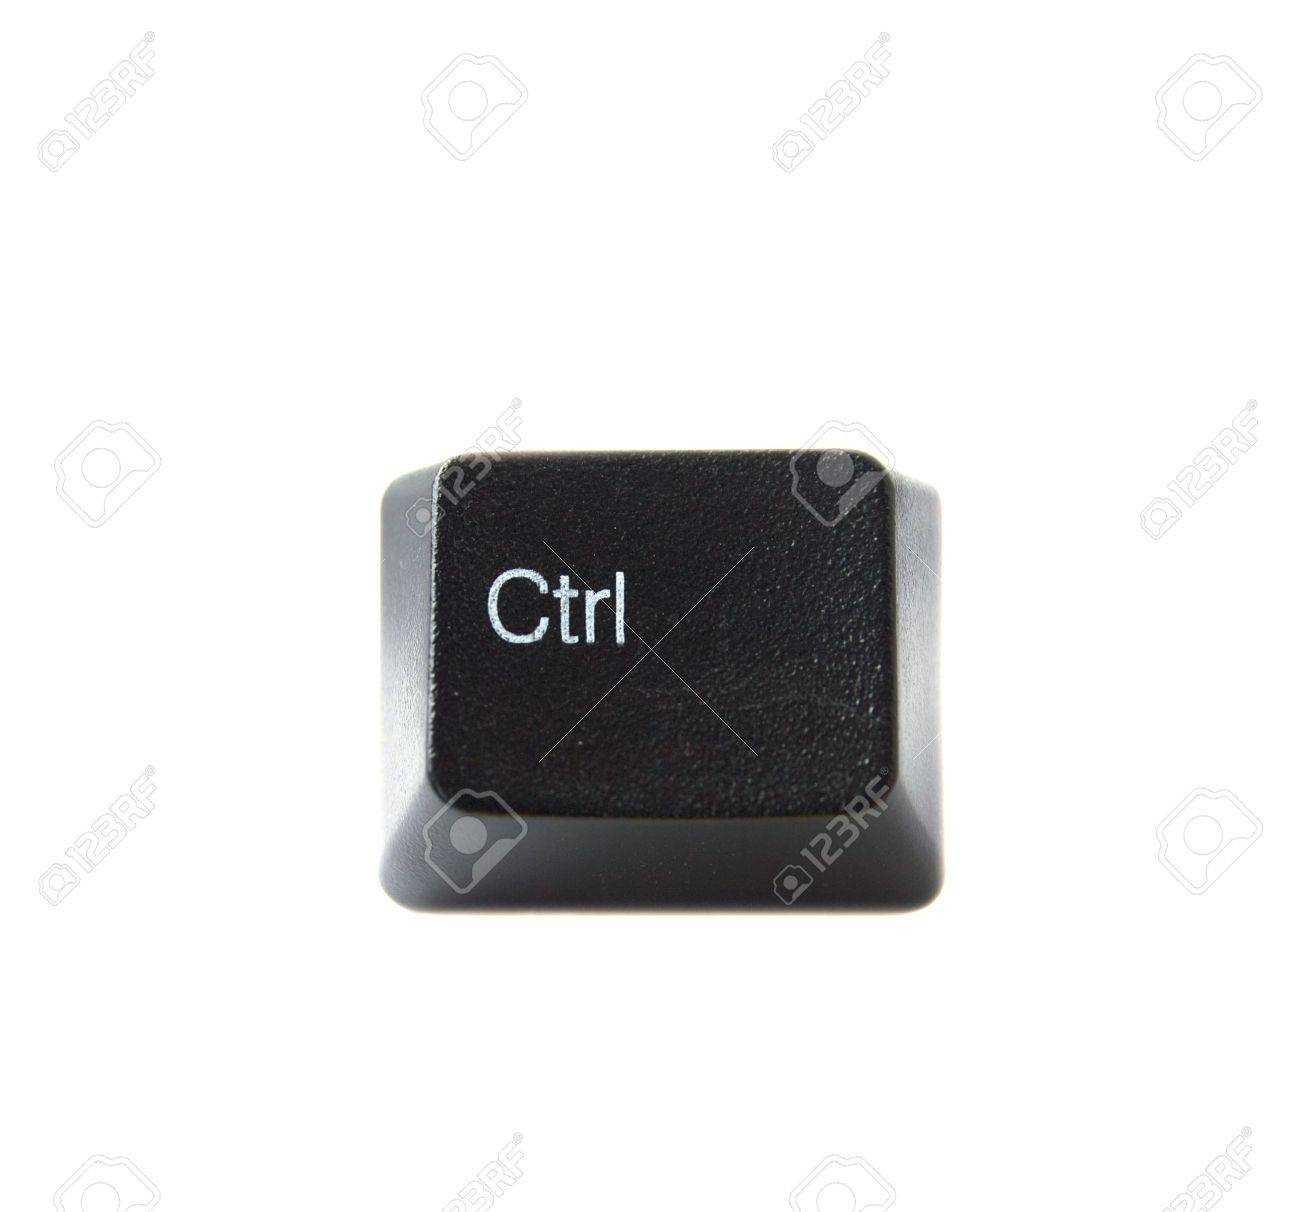 The Control Key From A Black Computer Keyboard Stock Photo ...